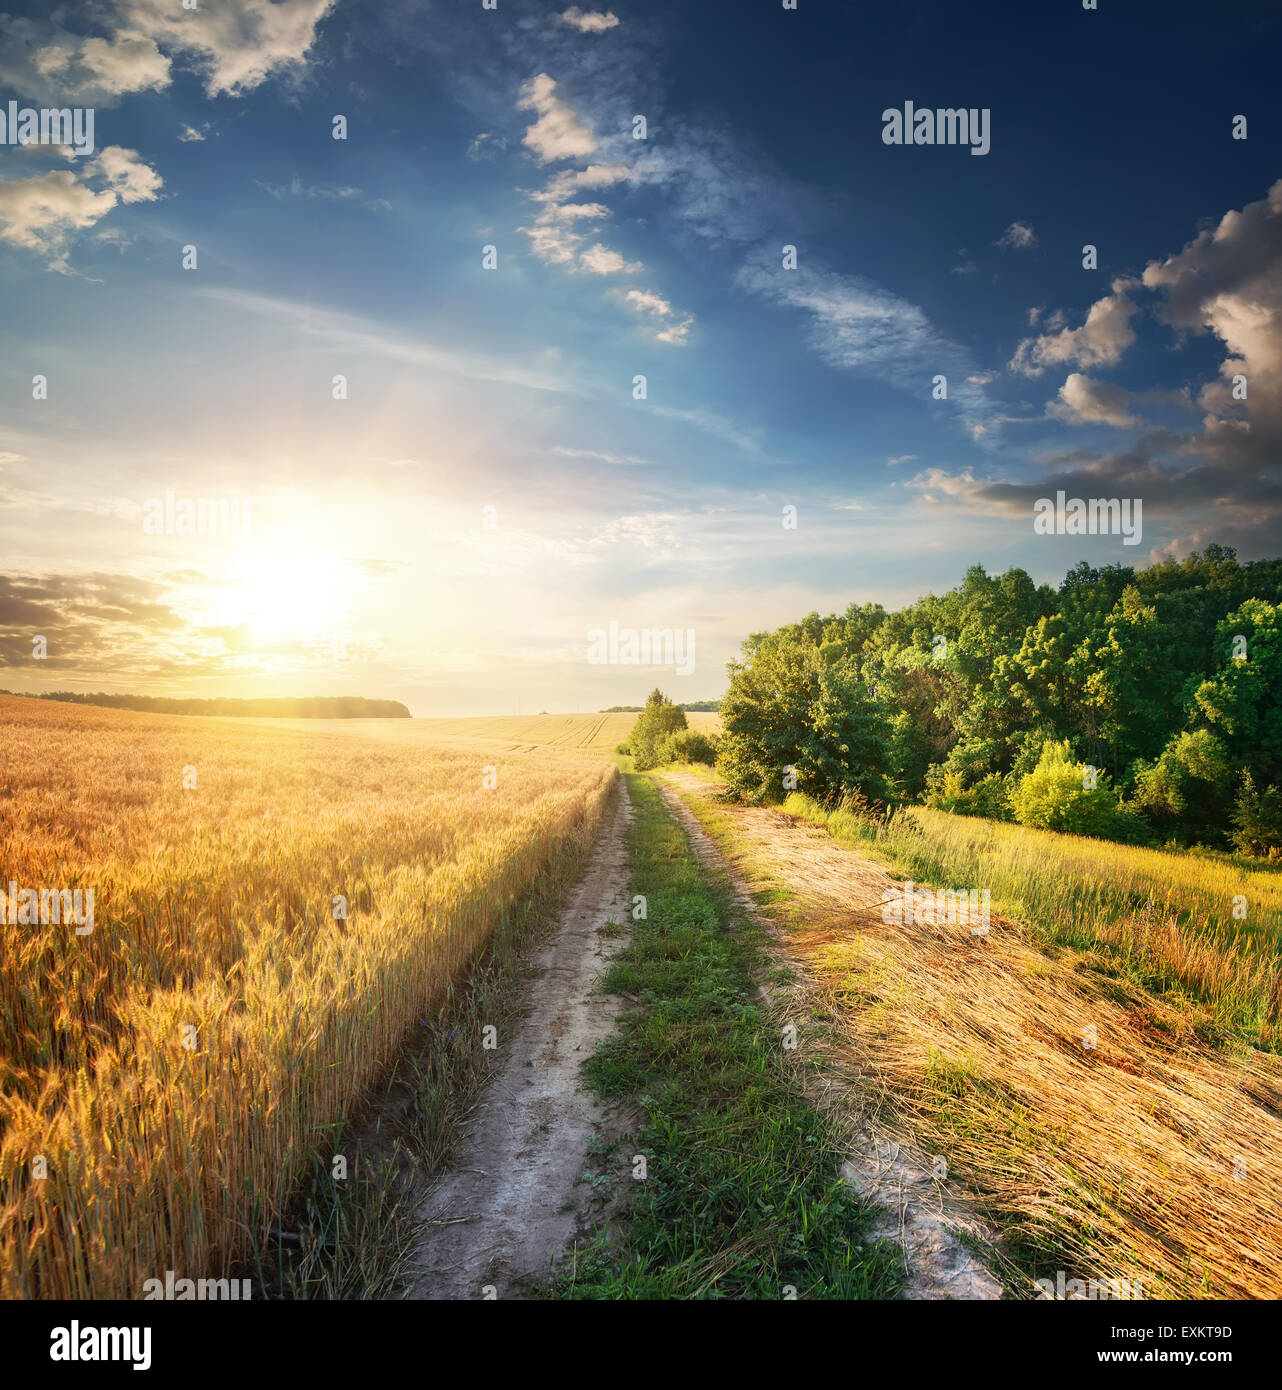 Field of wheat near the country road - Stock Image